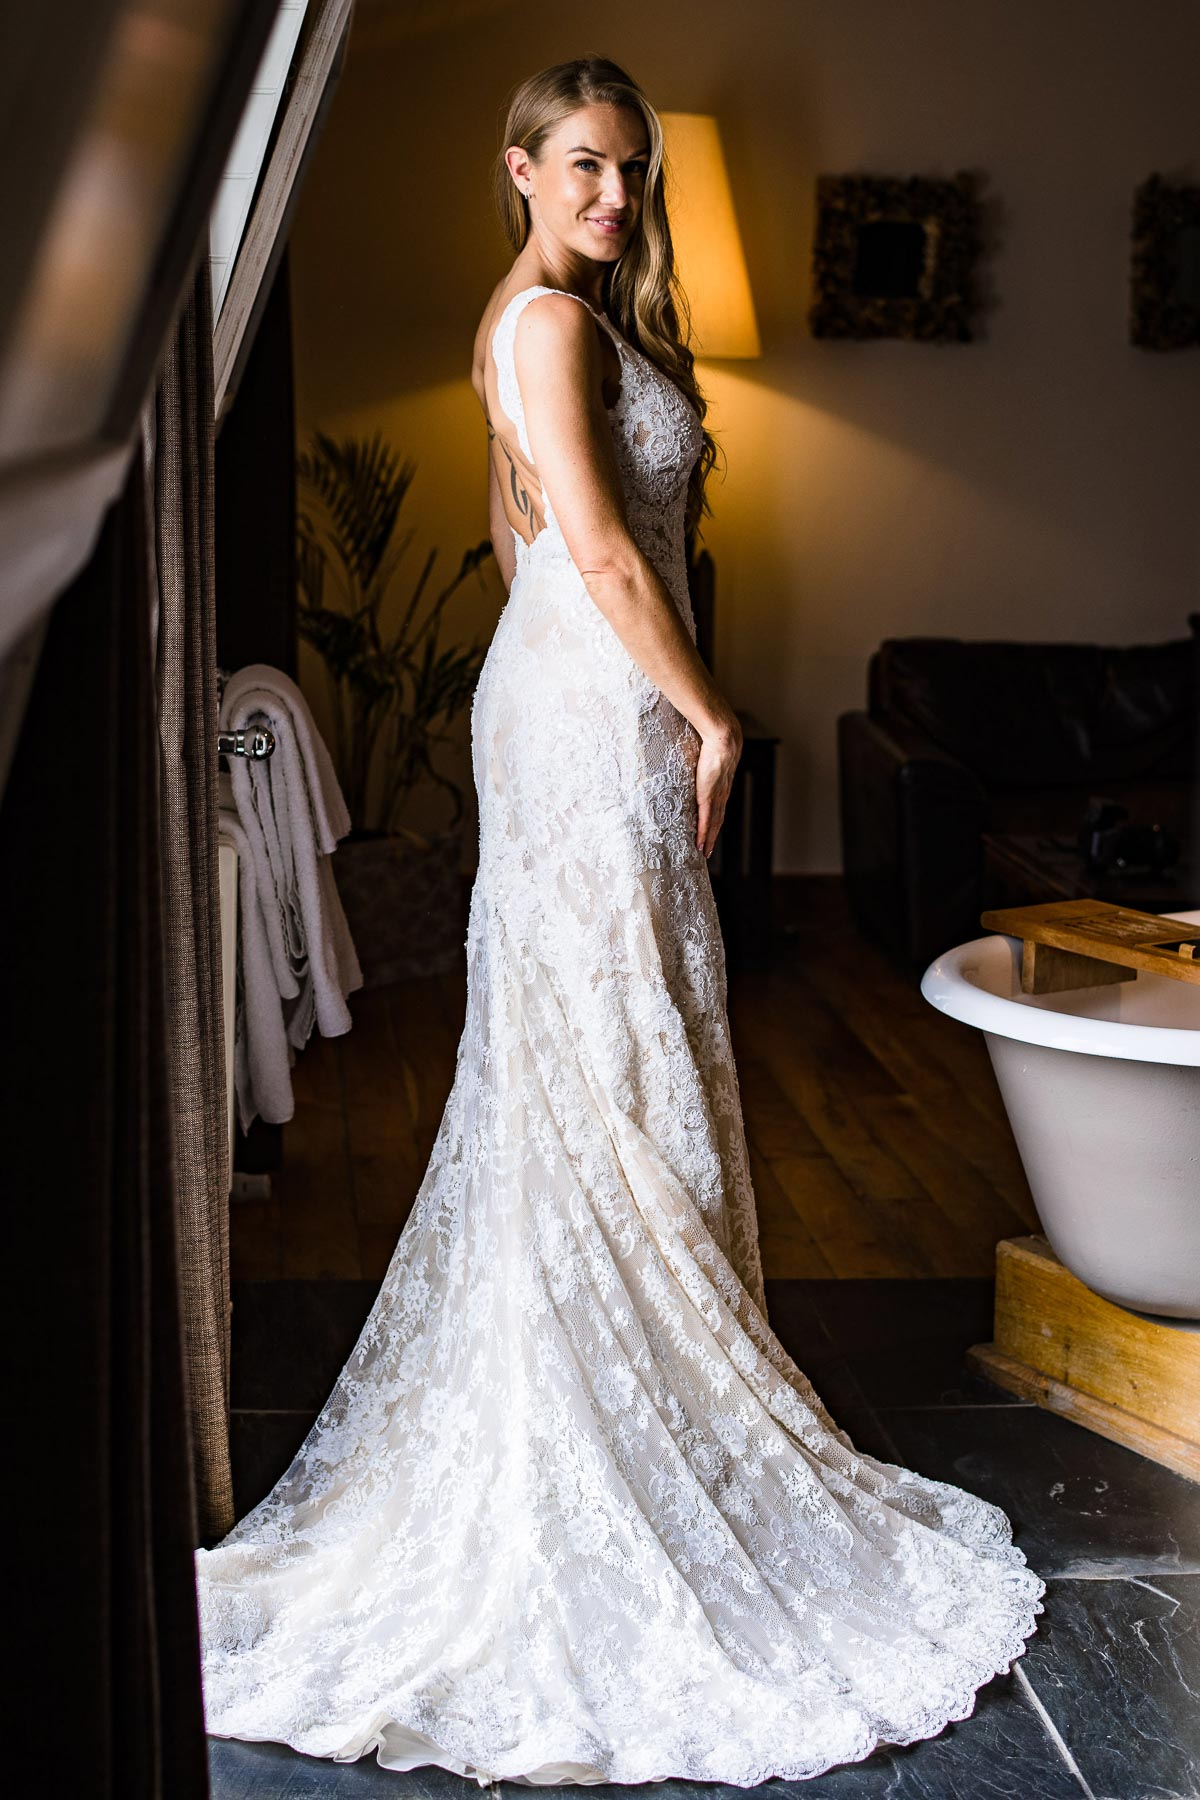 bride admires elegant lacy dress in mirror